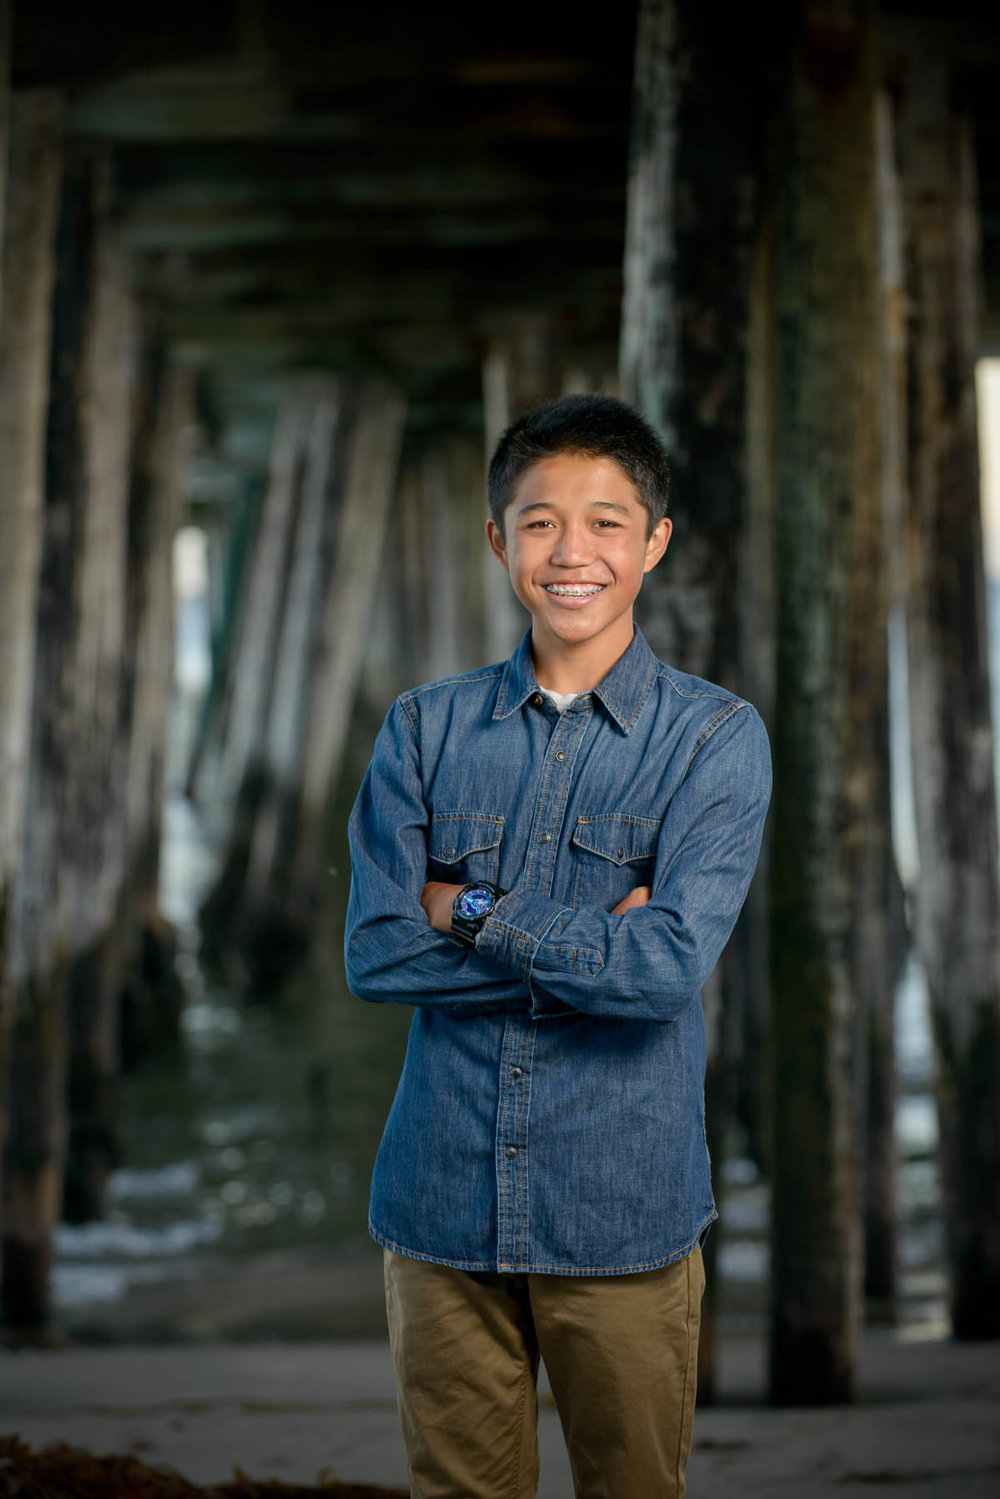 5905_d800b_Brandon_A_Capitola_Senior_Portrait_Photography.jpg